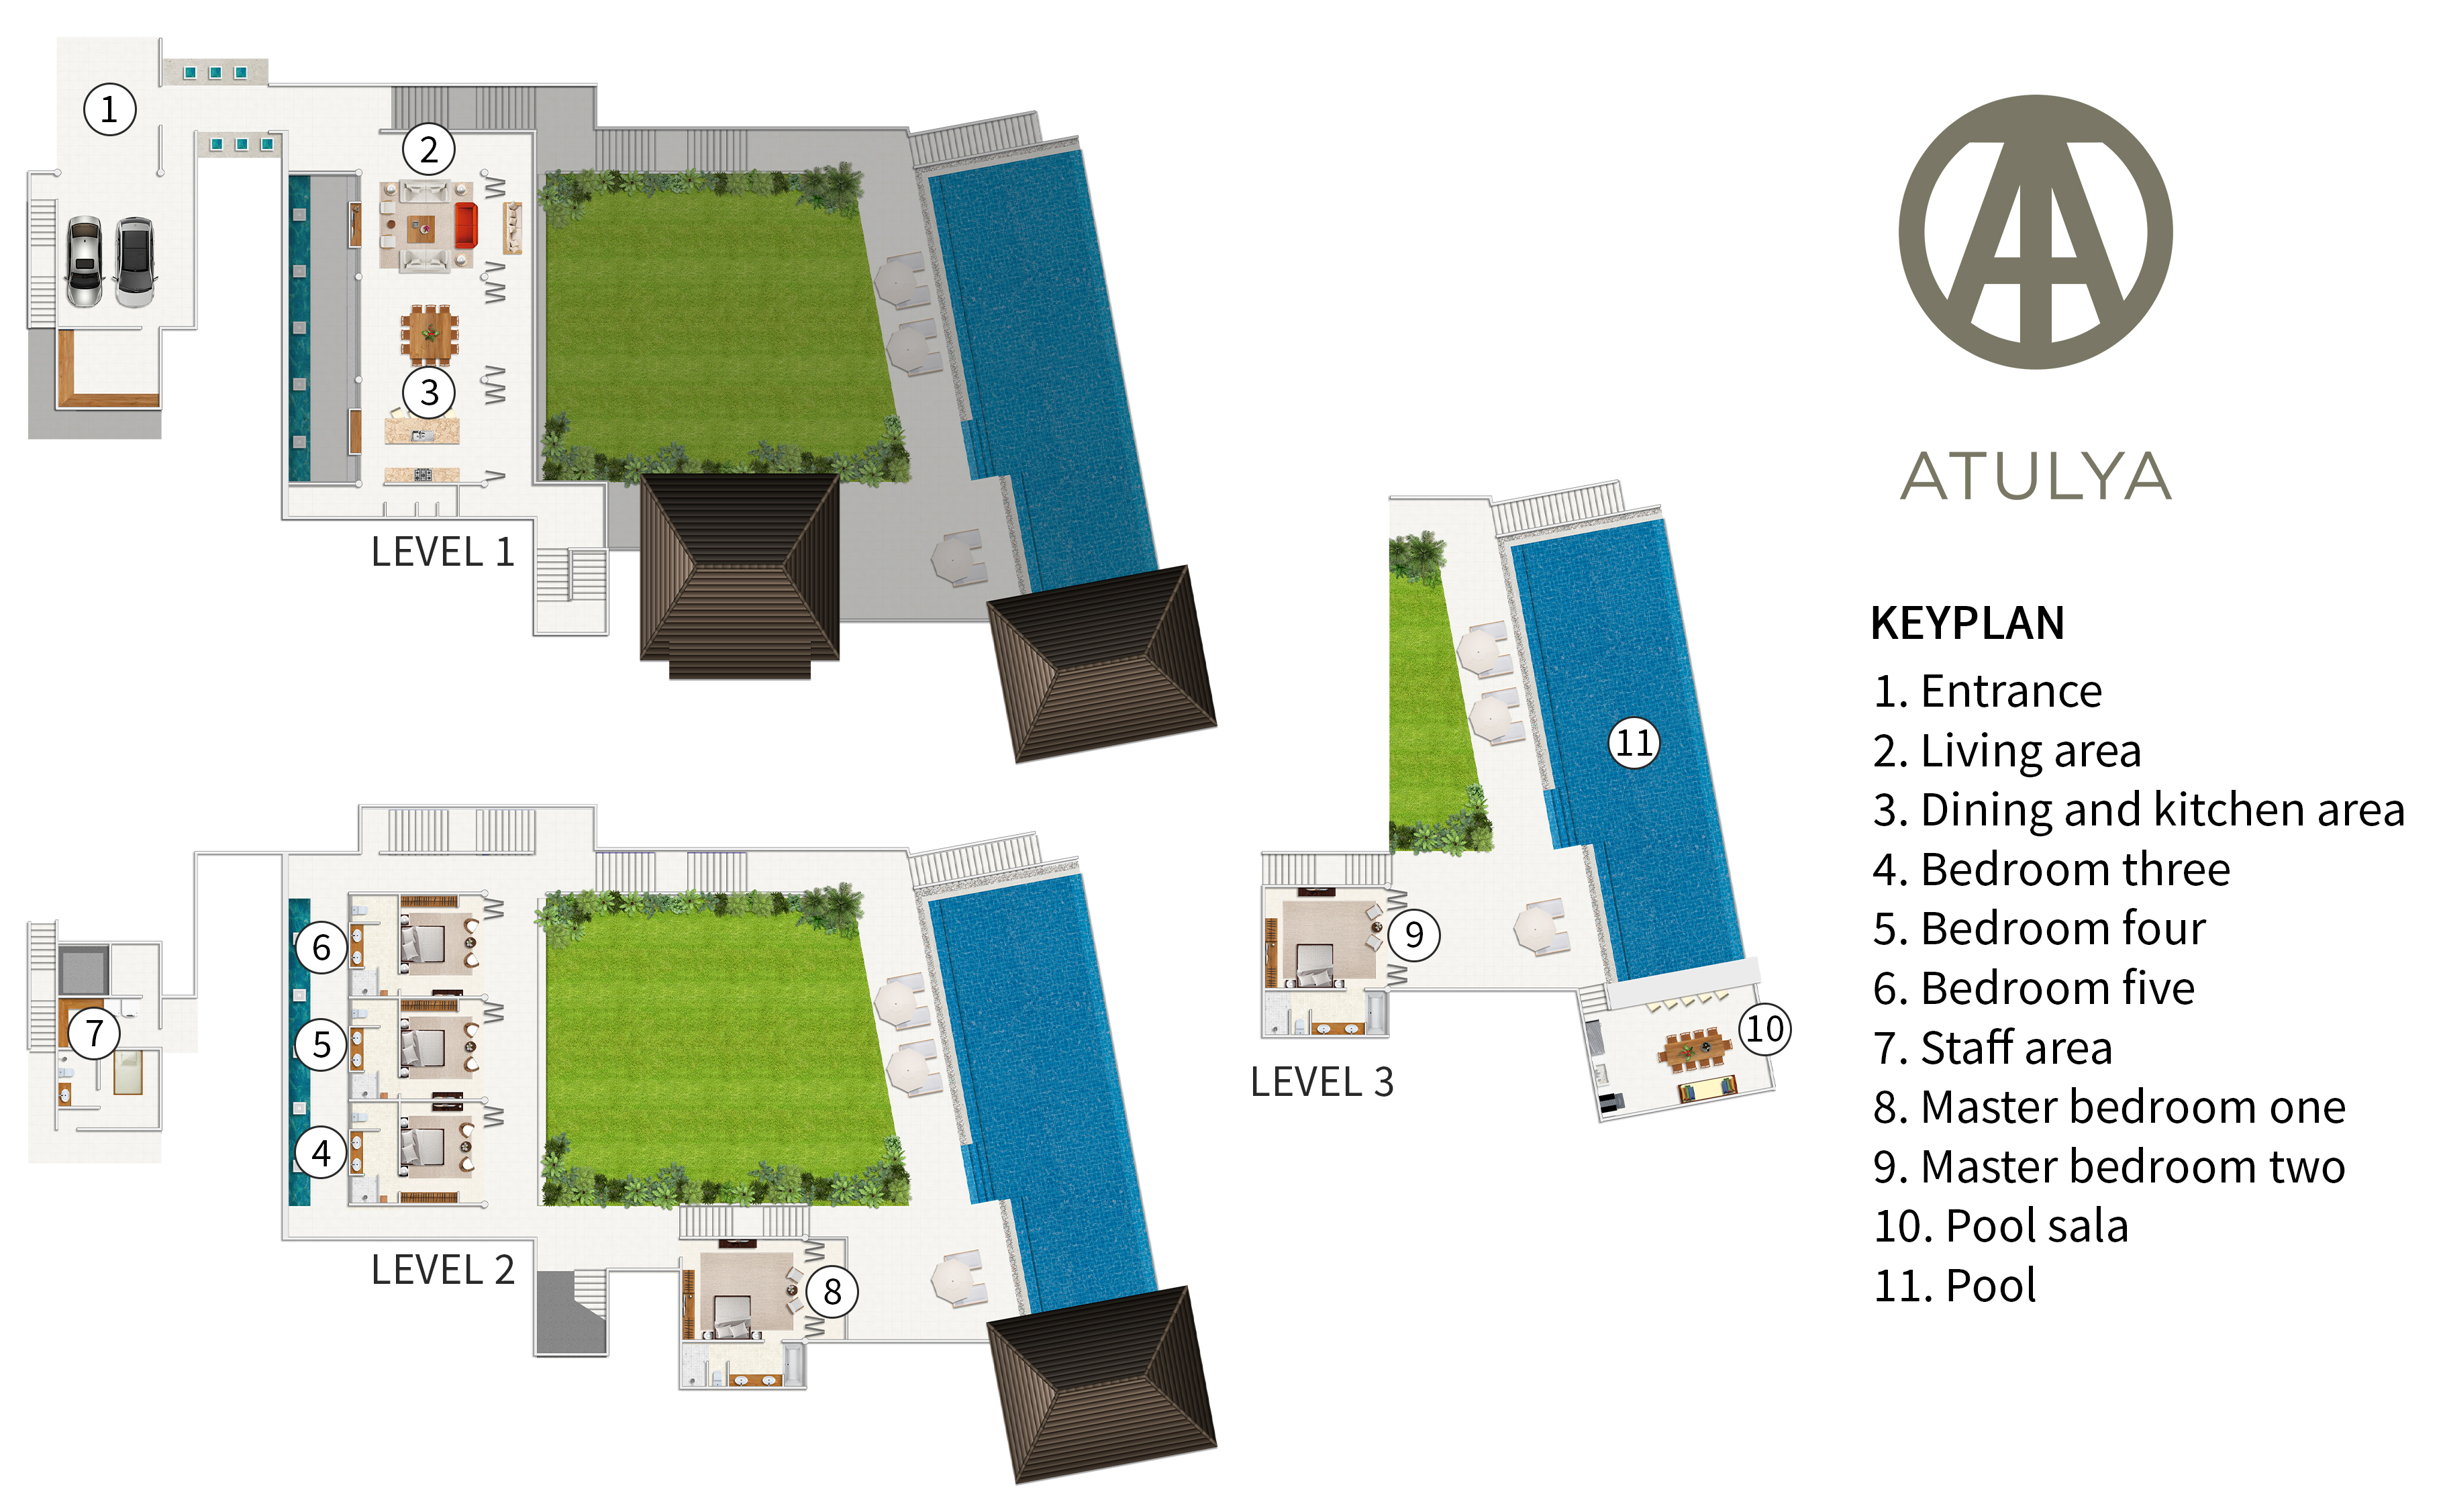 Panacea Retreat Residence - Atulya - Floorplan